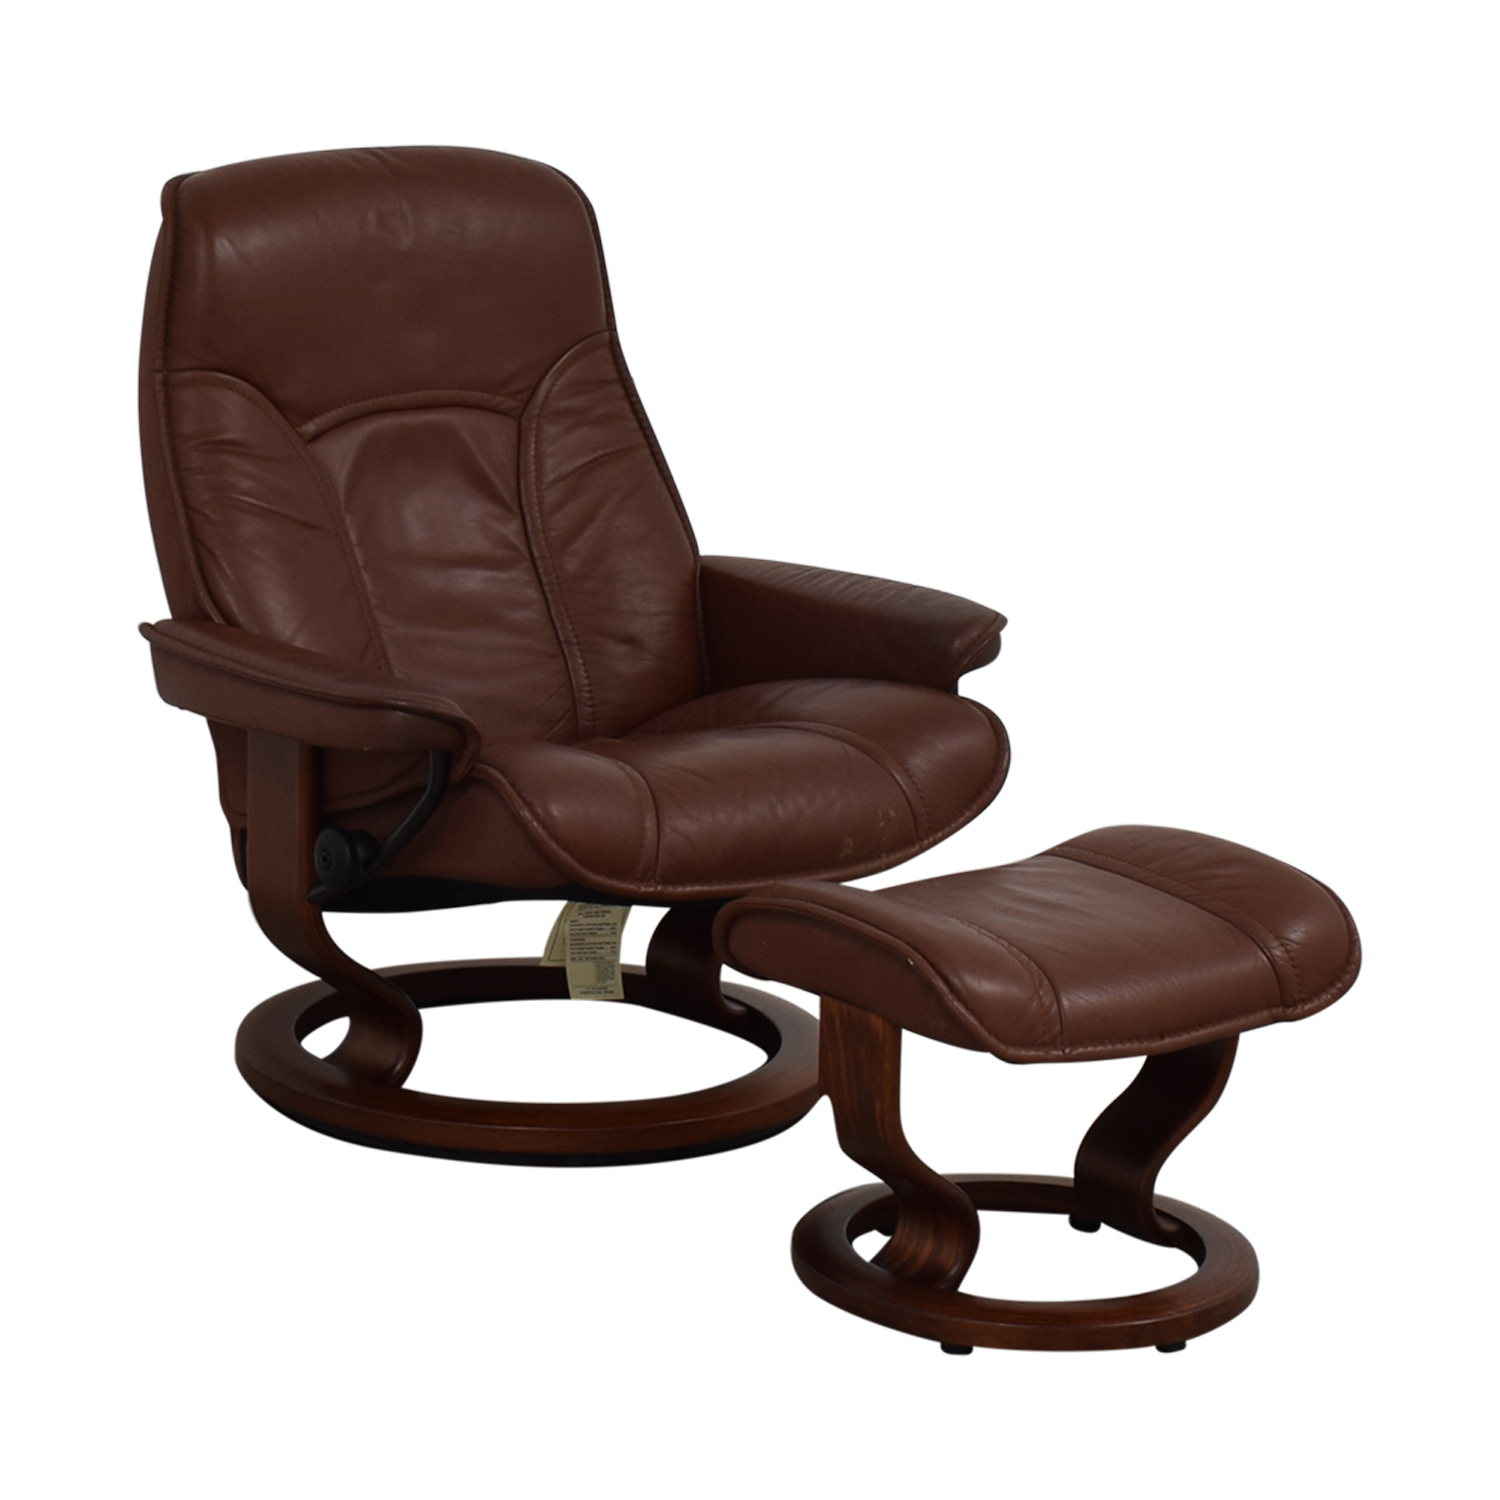 shop  Brown Swivel Chair with Ottoman online